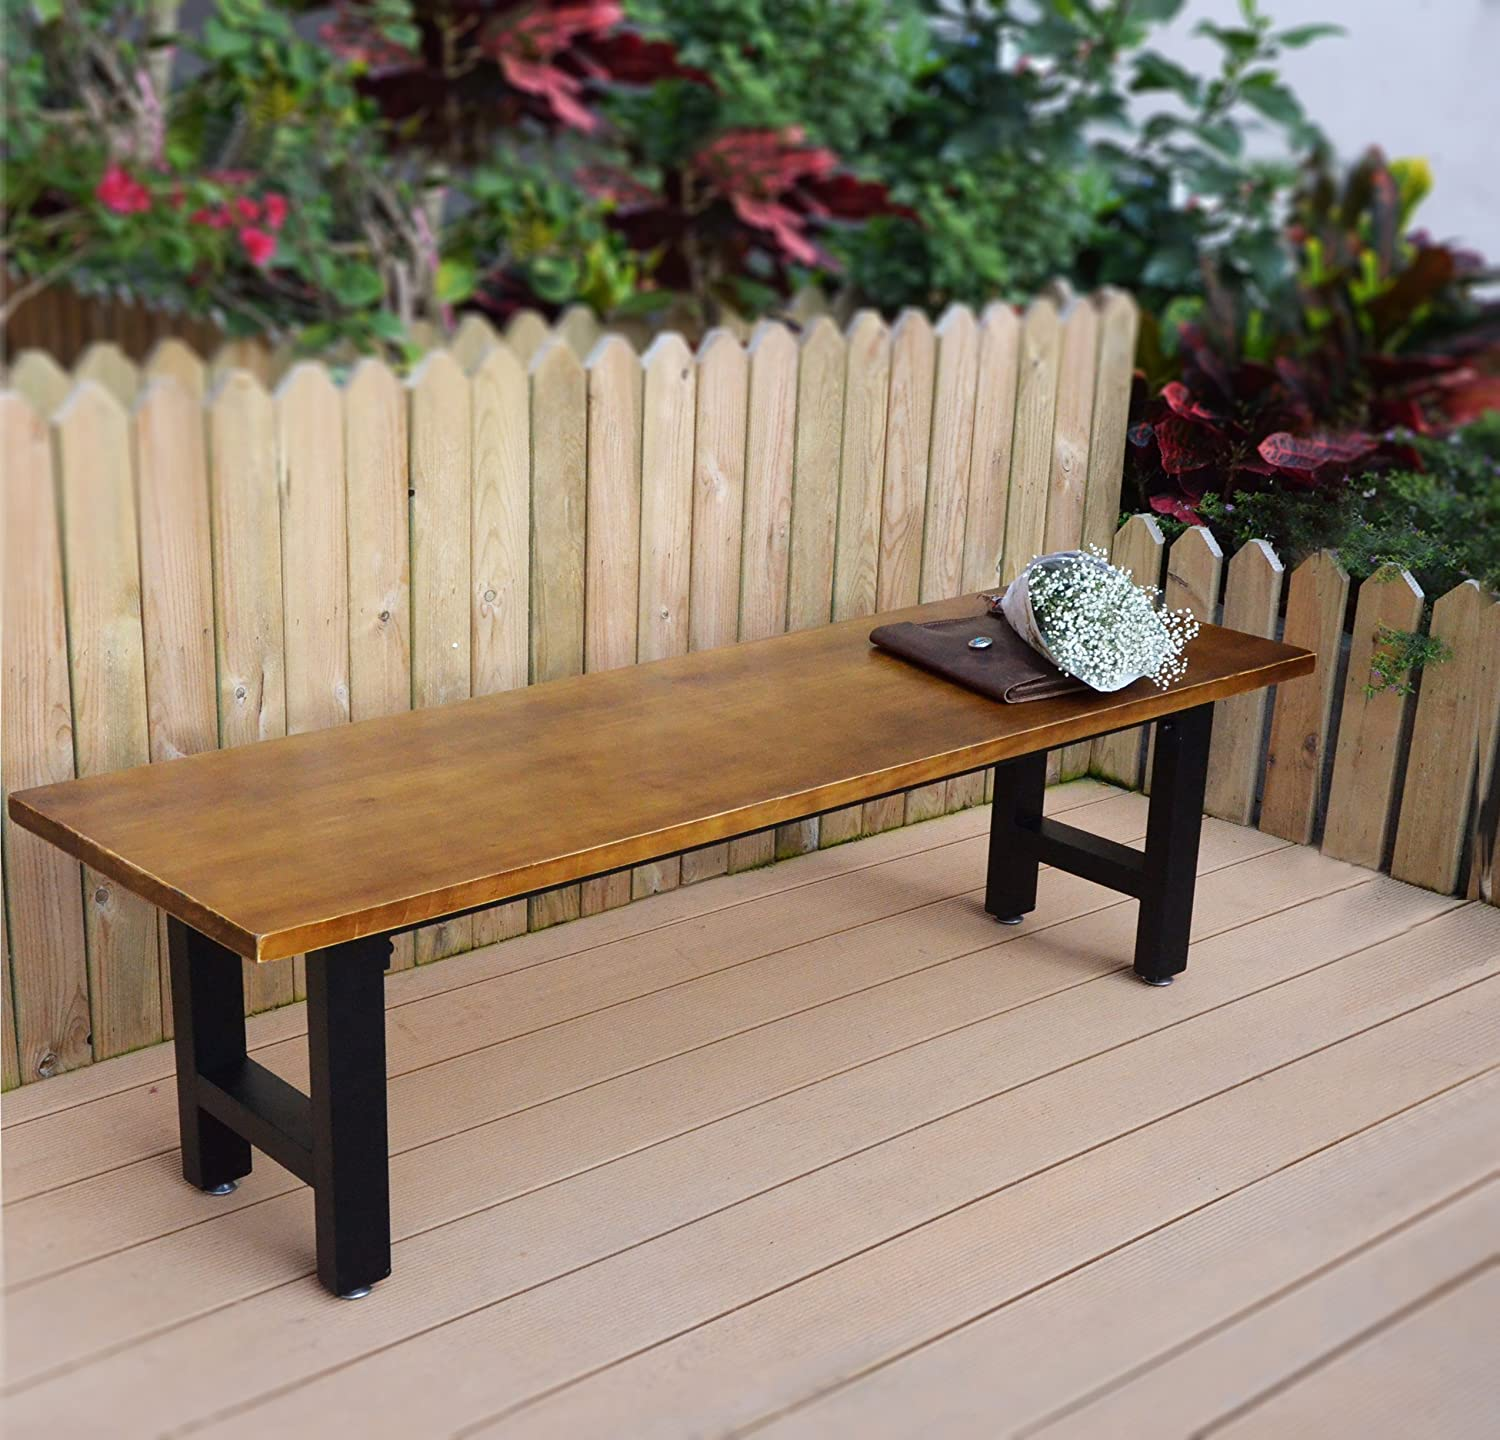 Amazon.com : VILAVITA 6 Feet Outdoor Wooden Platform Bench Pinewood ...